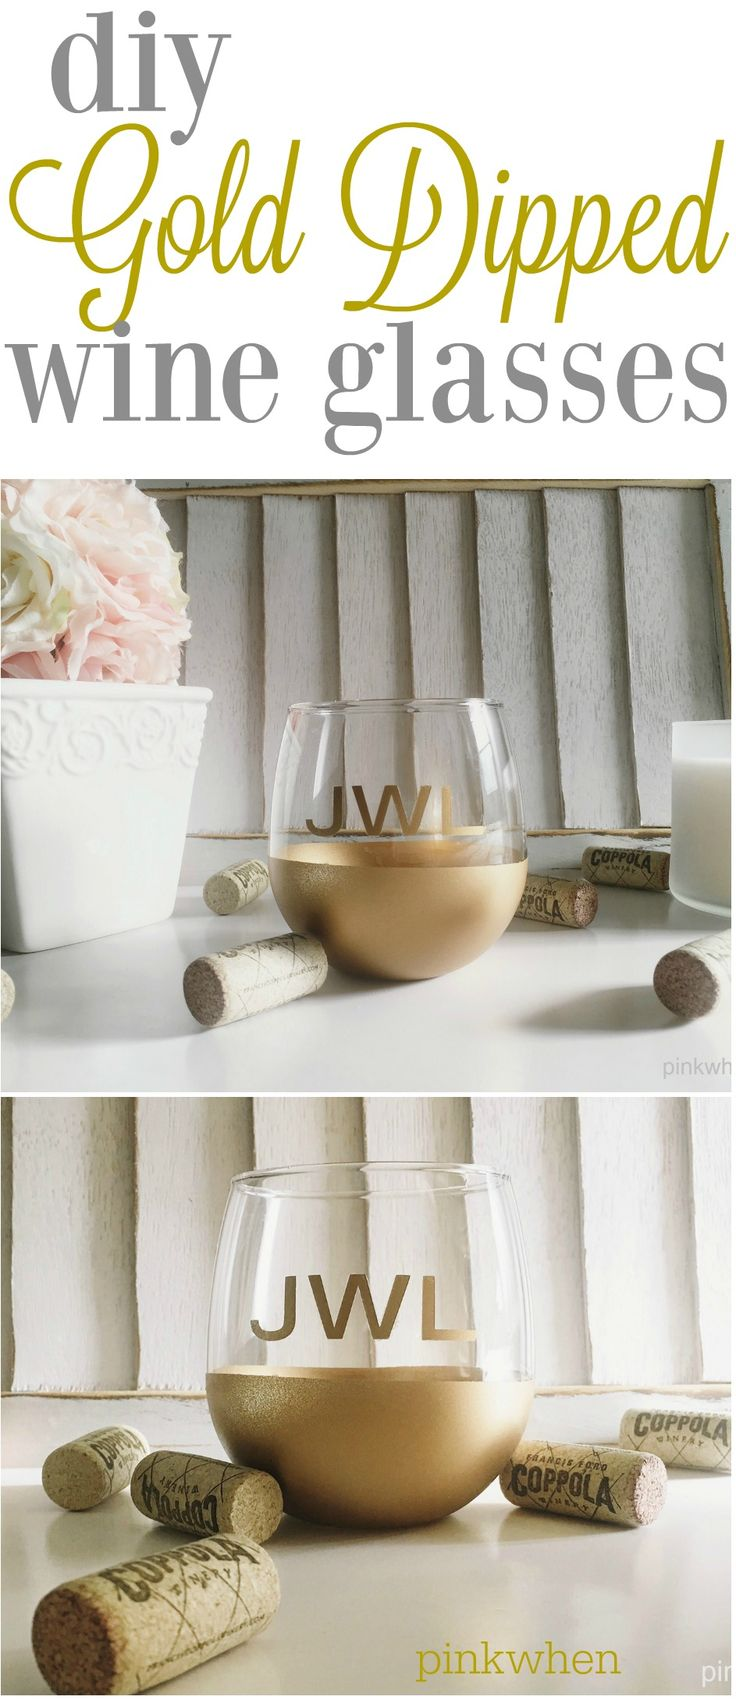 Grab some stemless wine glasses and create these gold dipped wine glasses with ease! Step by step instructions on how to make your own personalized glasses. Perfect for holidays and parties!